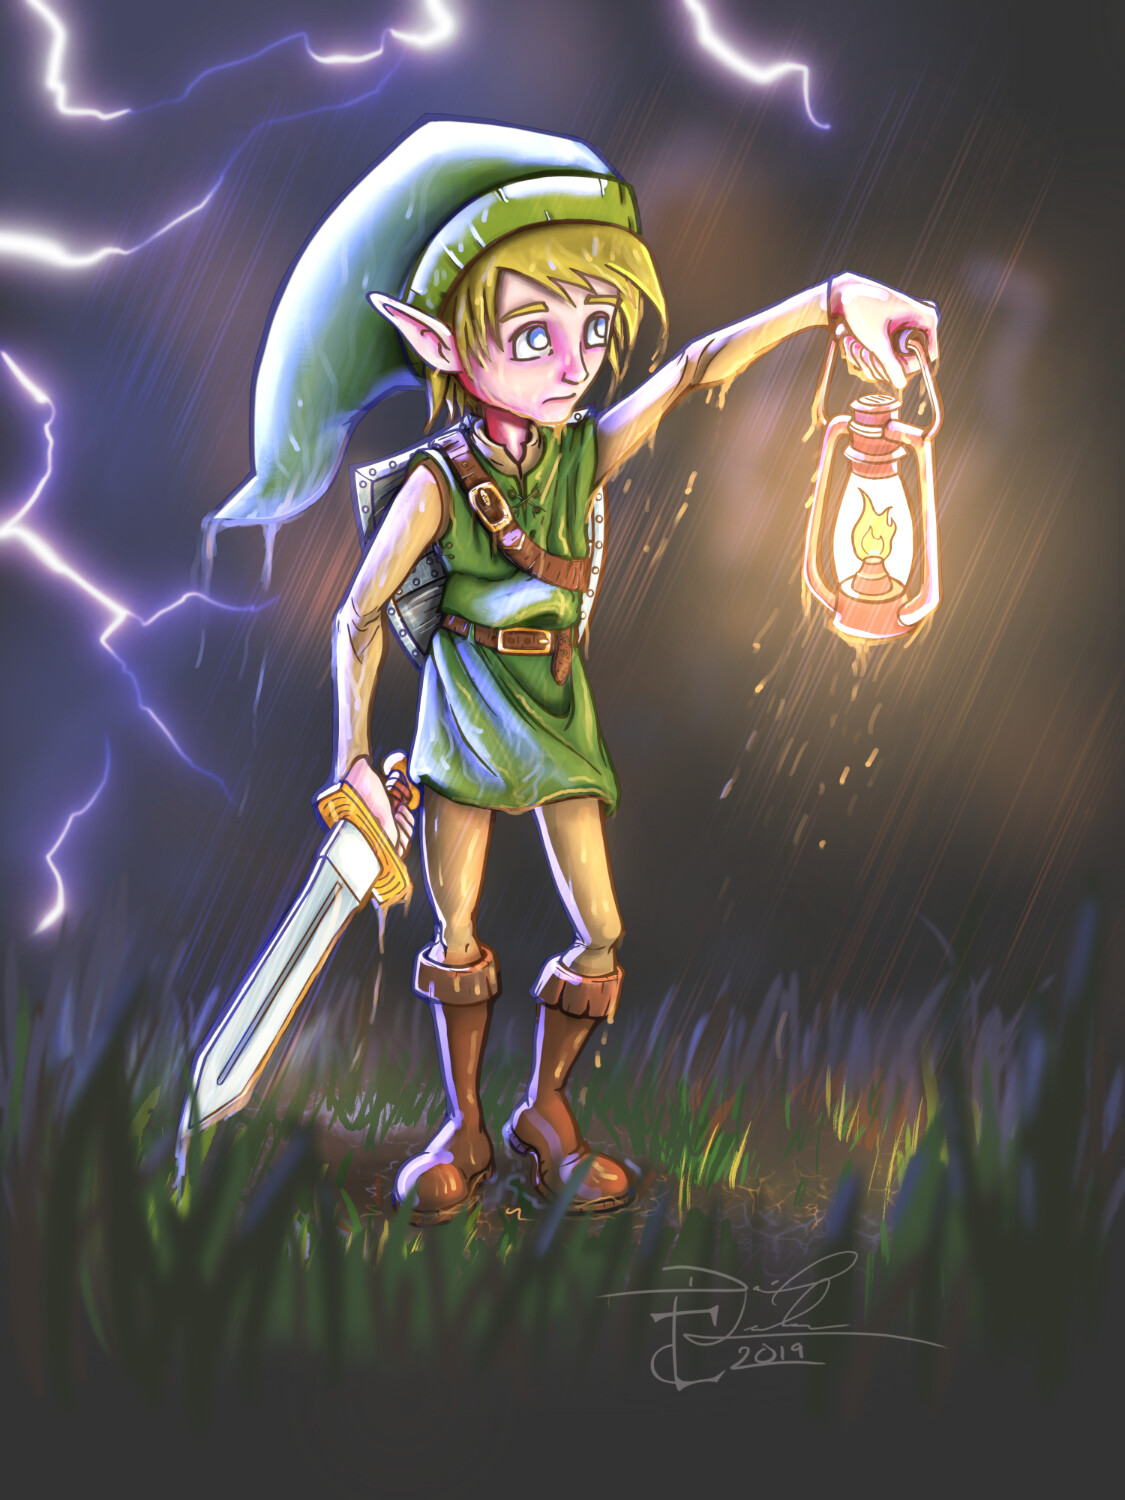 A Link to the Past Fanart.